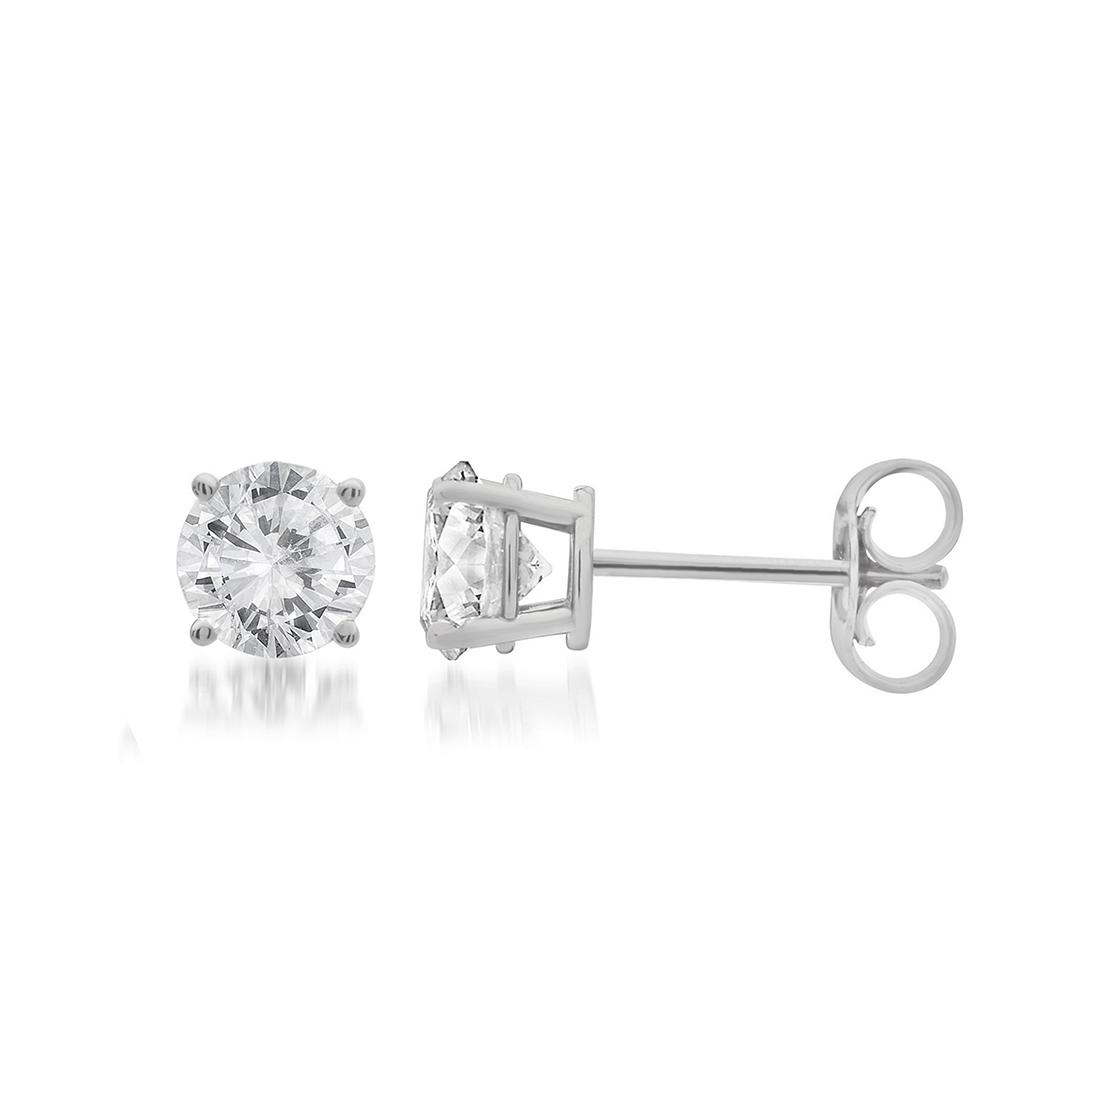 0.25ct - 0.60ct  Total Weight Round Brilliant Diamond Studs in 14kt White or Yellow Gold